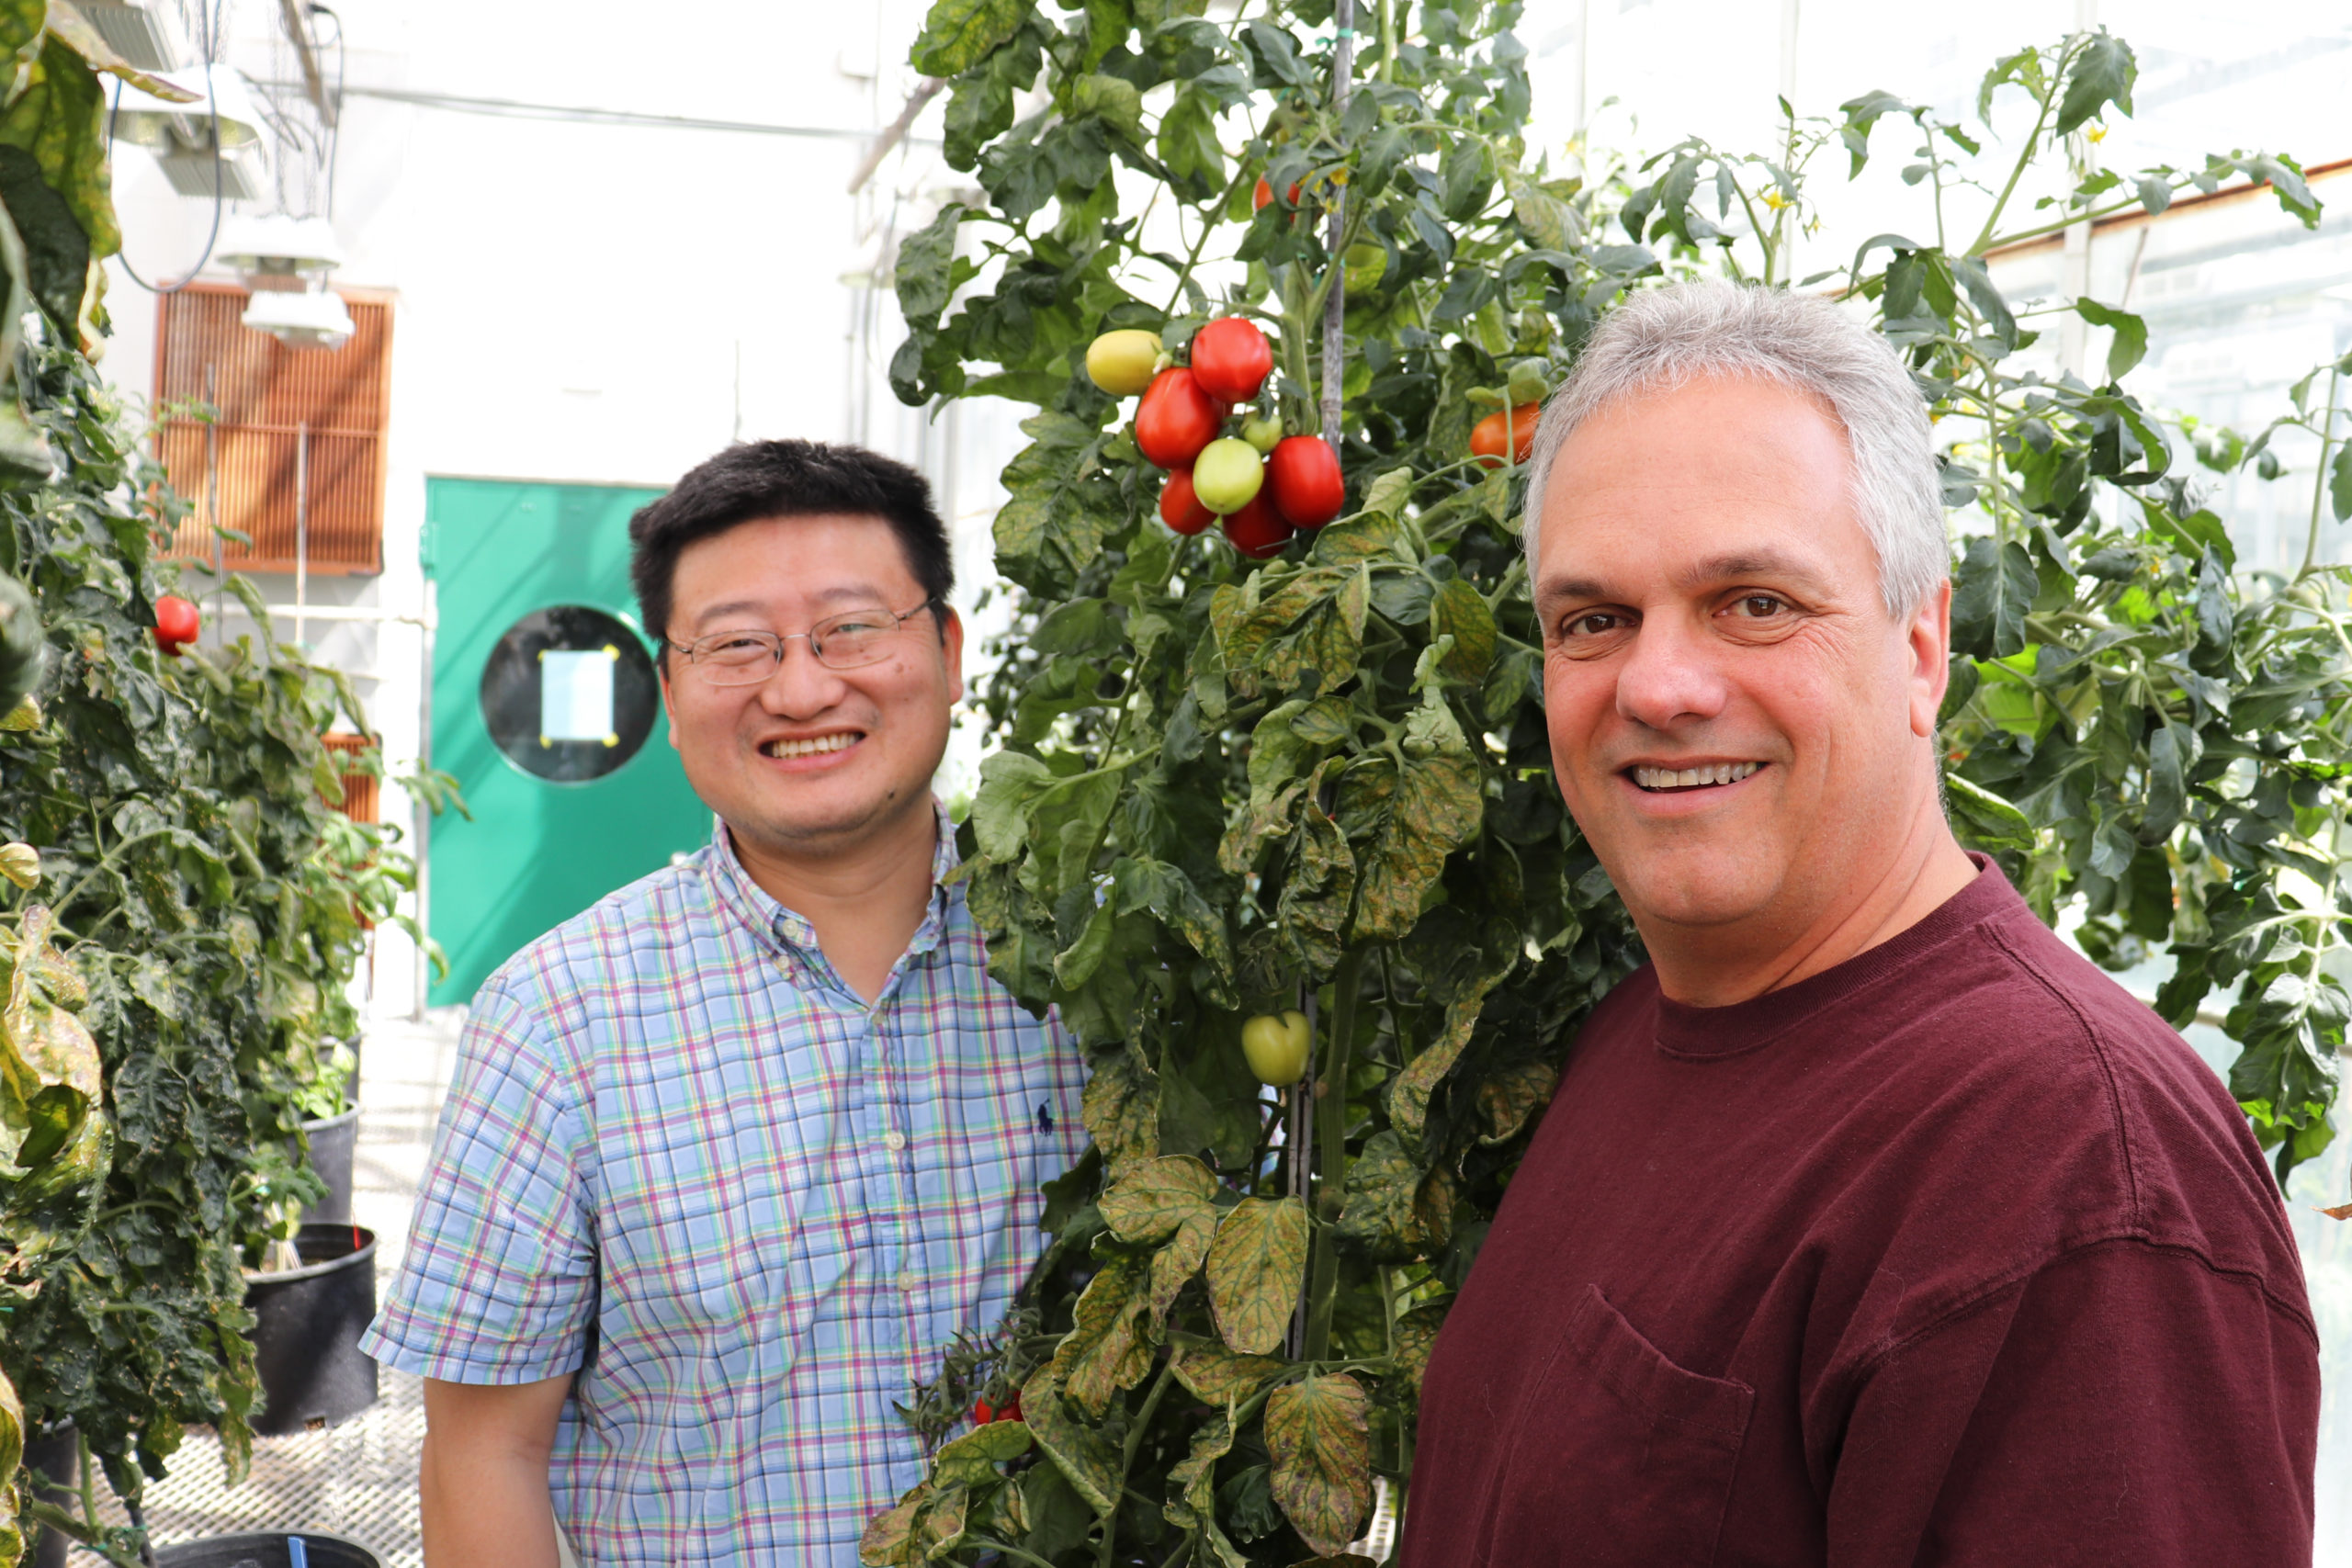 Scientists Create New Genomic Resource for Improving Tomatoes